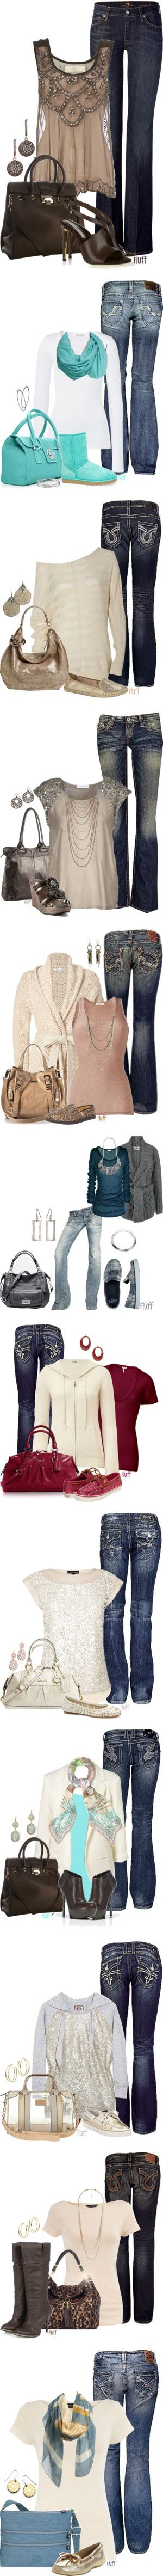 Loving these outfits!Casual Chic, Outfit Ideas, Closets, Clothing, Cute Outfits, Jeans Sets, Jean Outfits, Jeans Outfit, Dressing Up Jeans